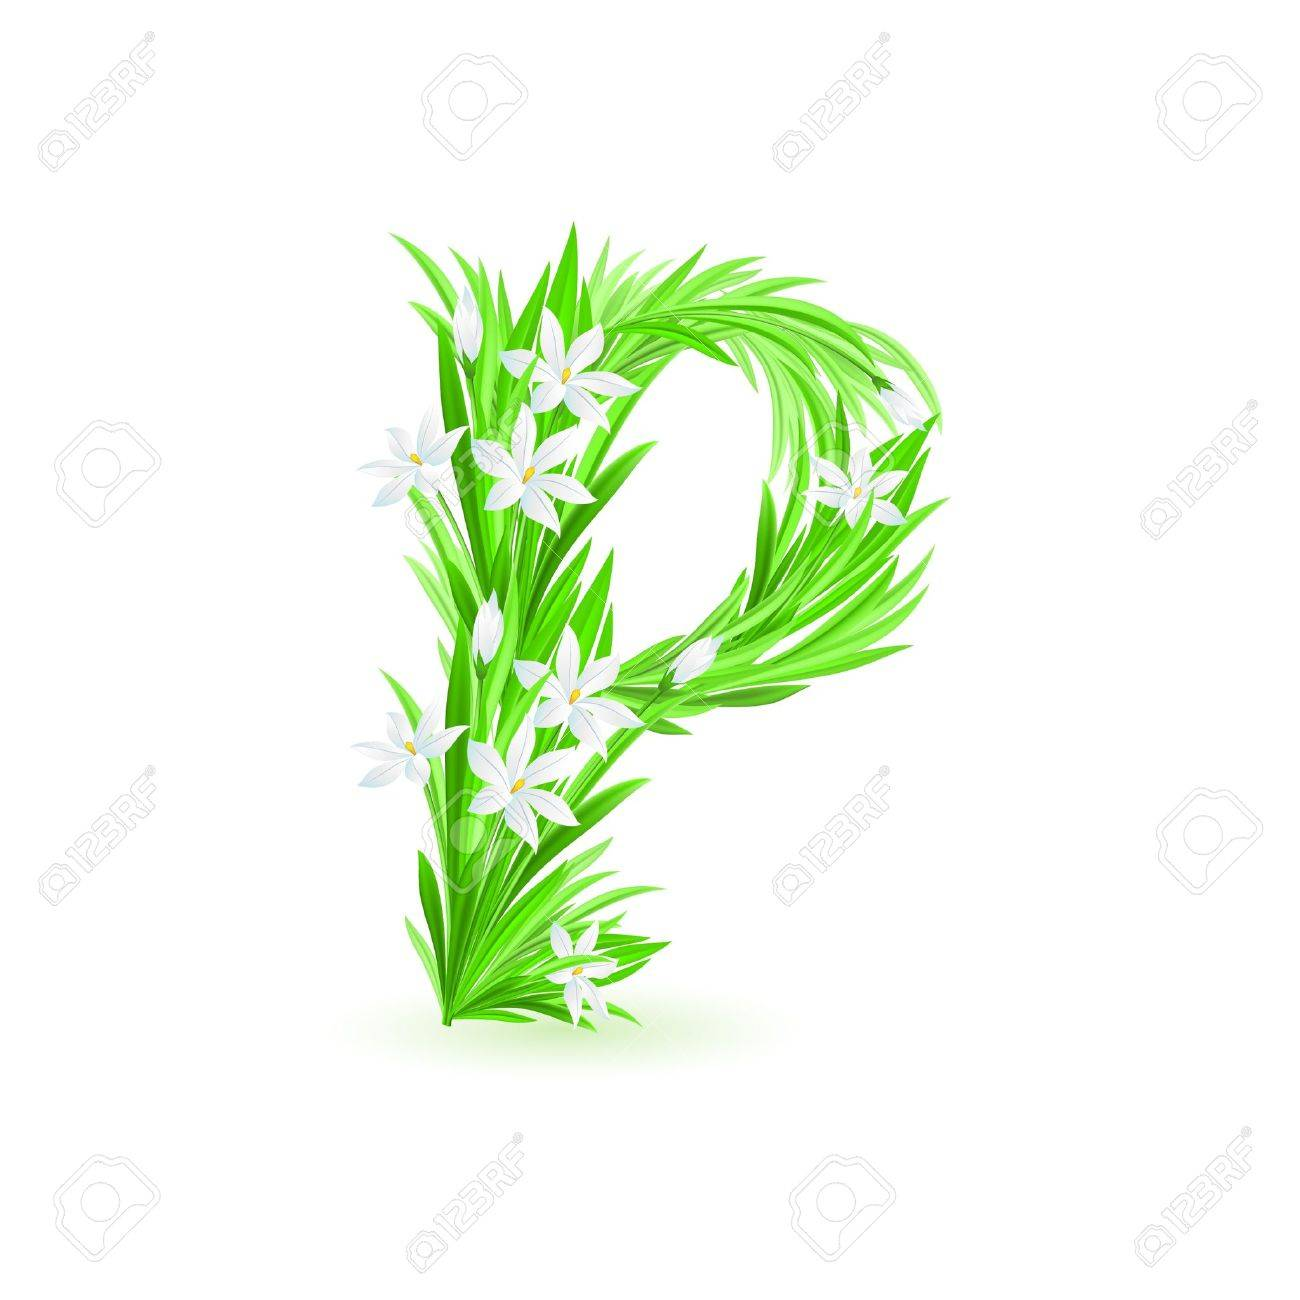 One letter of spring flowers alphabet - P. Illustration on white background Stock Vector - 9262112